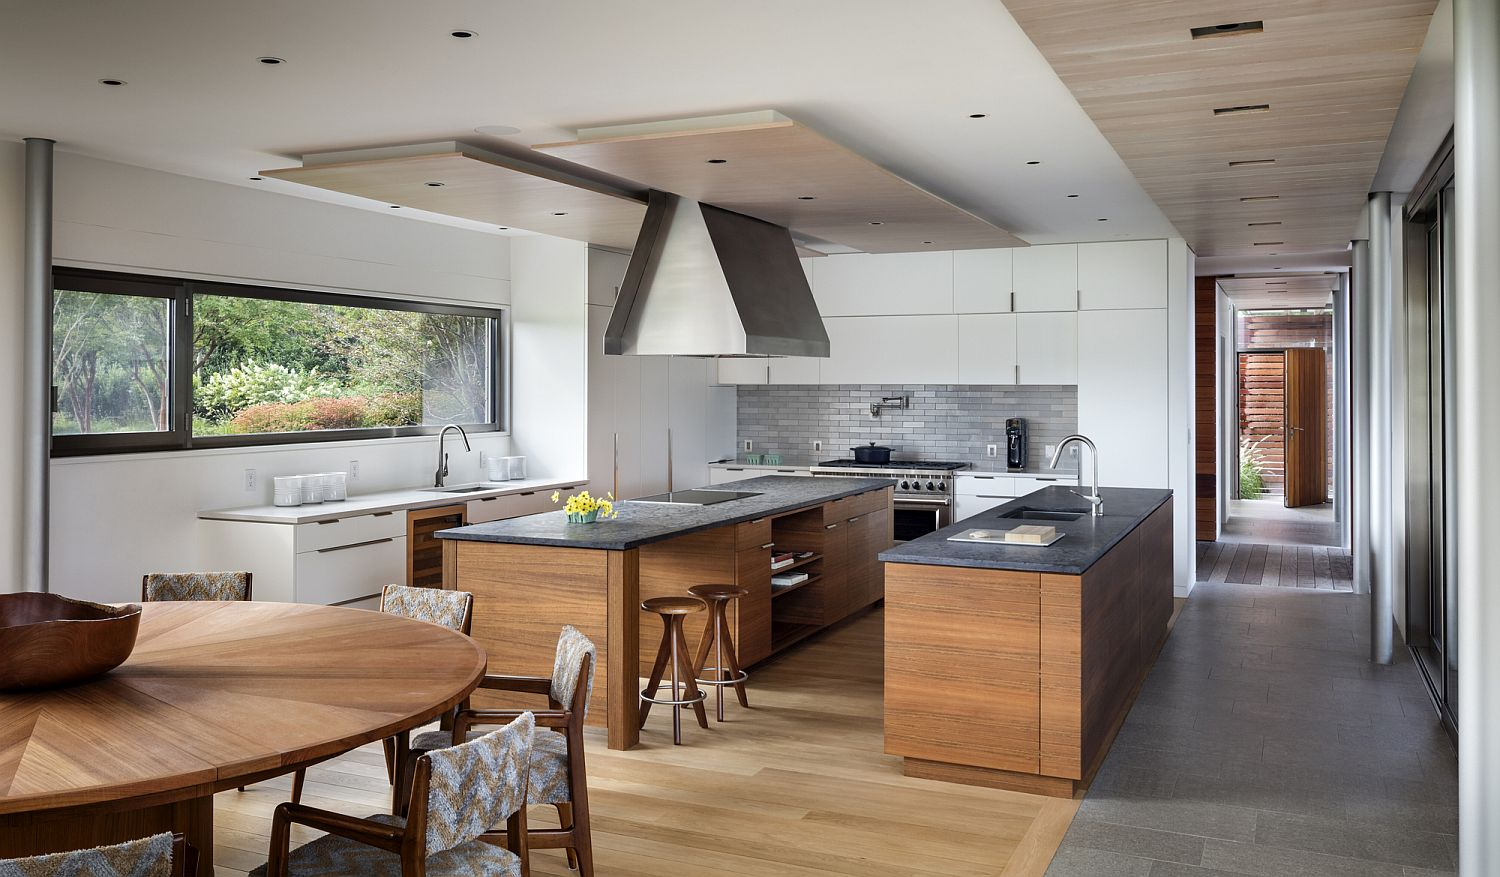 Wood and white create a sensational kitchen inside the Hamptons home